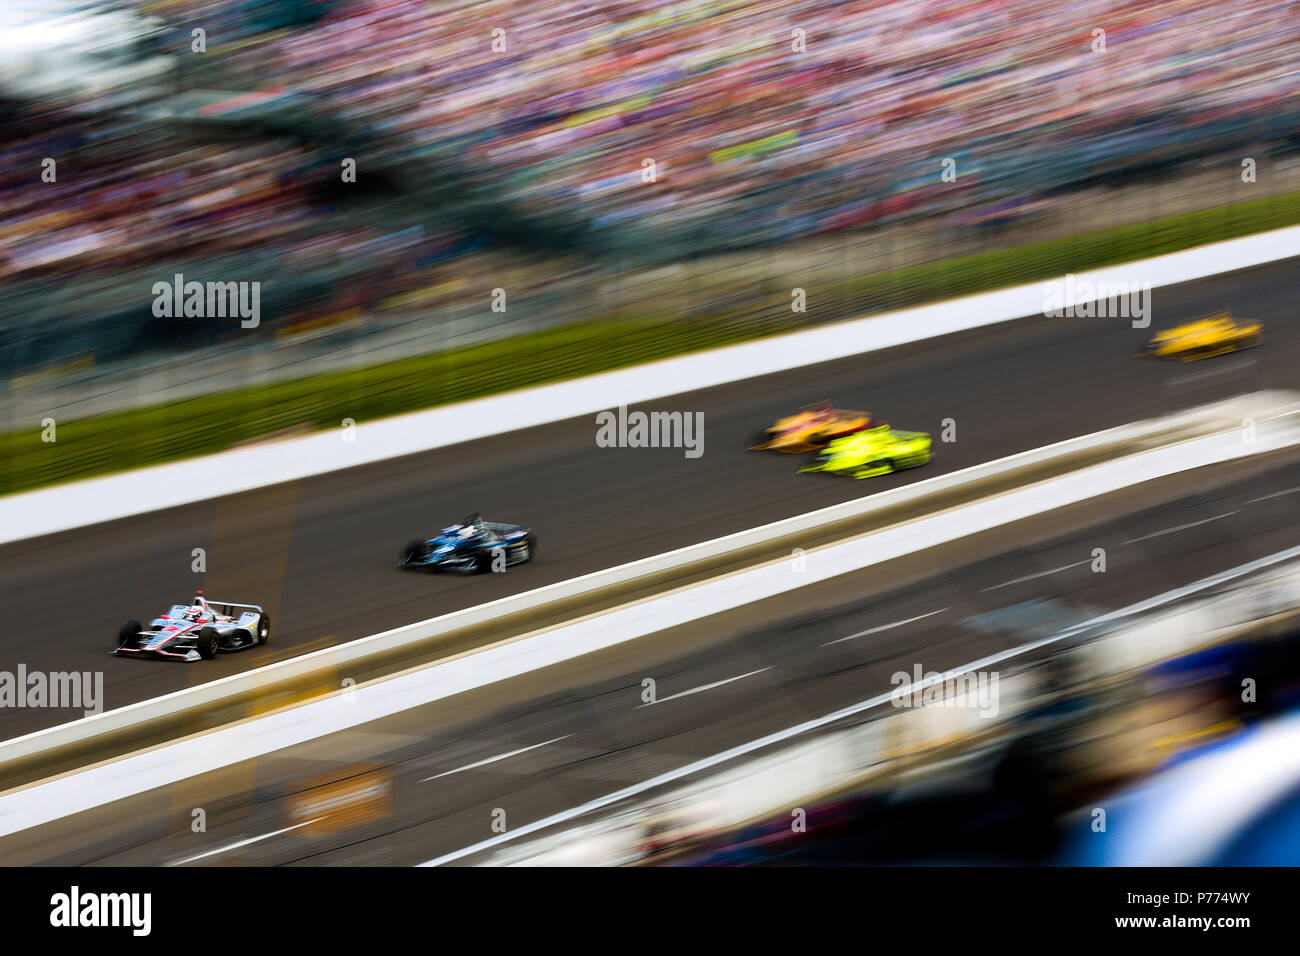 Racing driver will power of team penske leads the pack in his number 12 car at the indy 500 race credit shivraj gohil spacesuit media